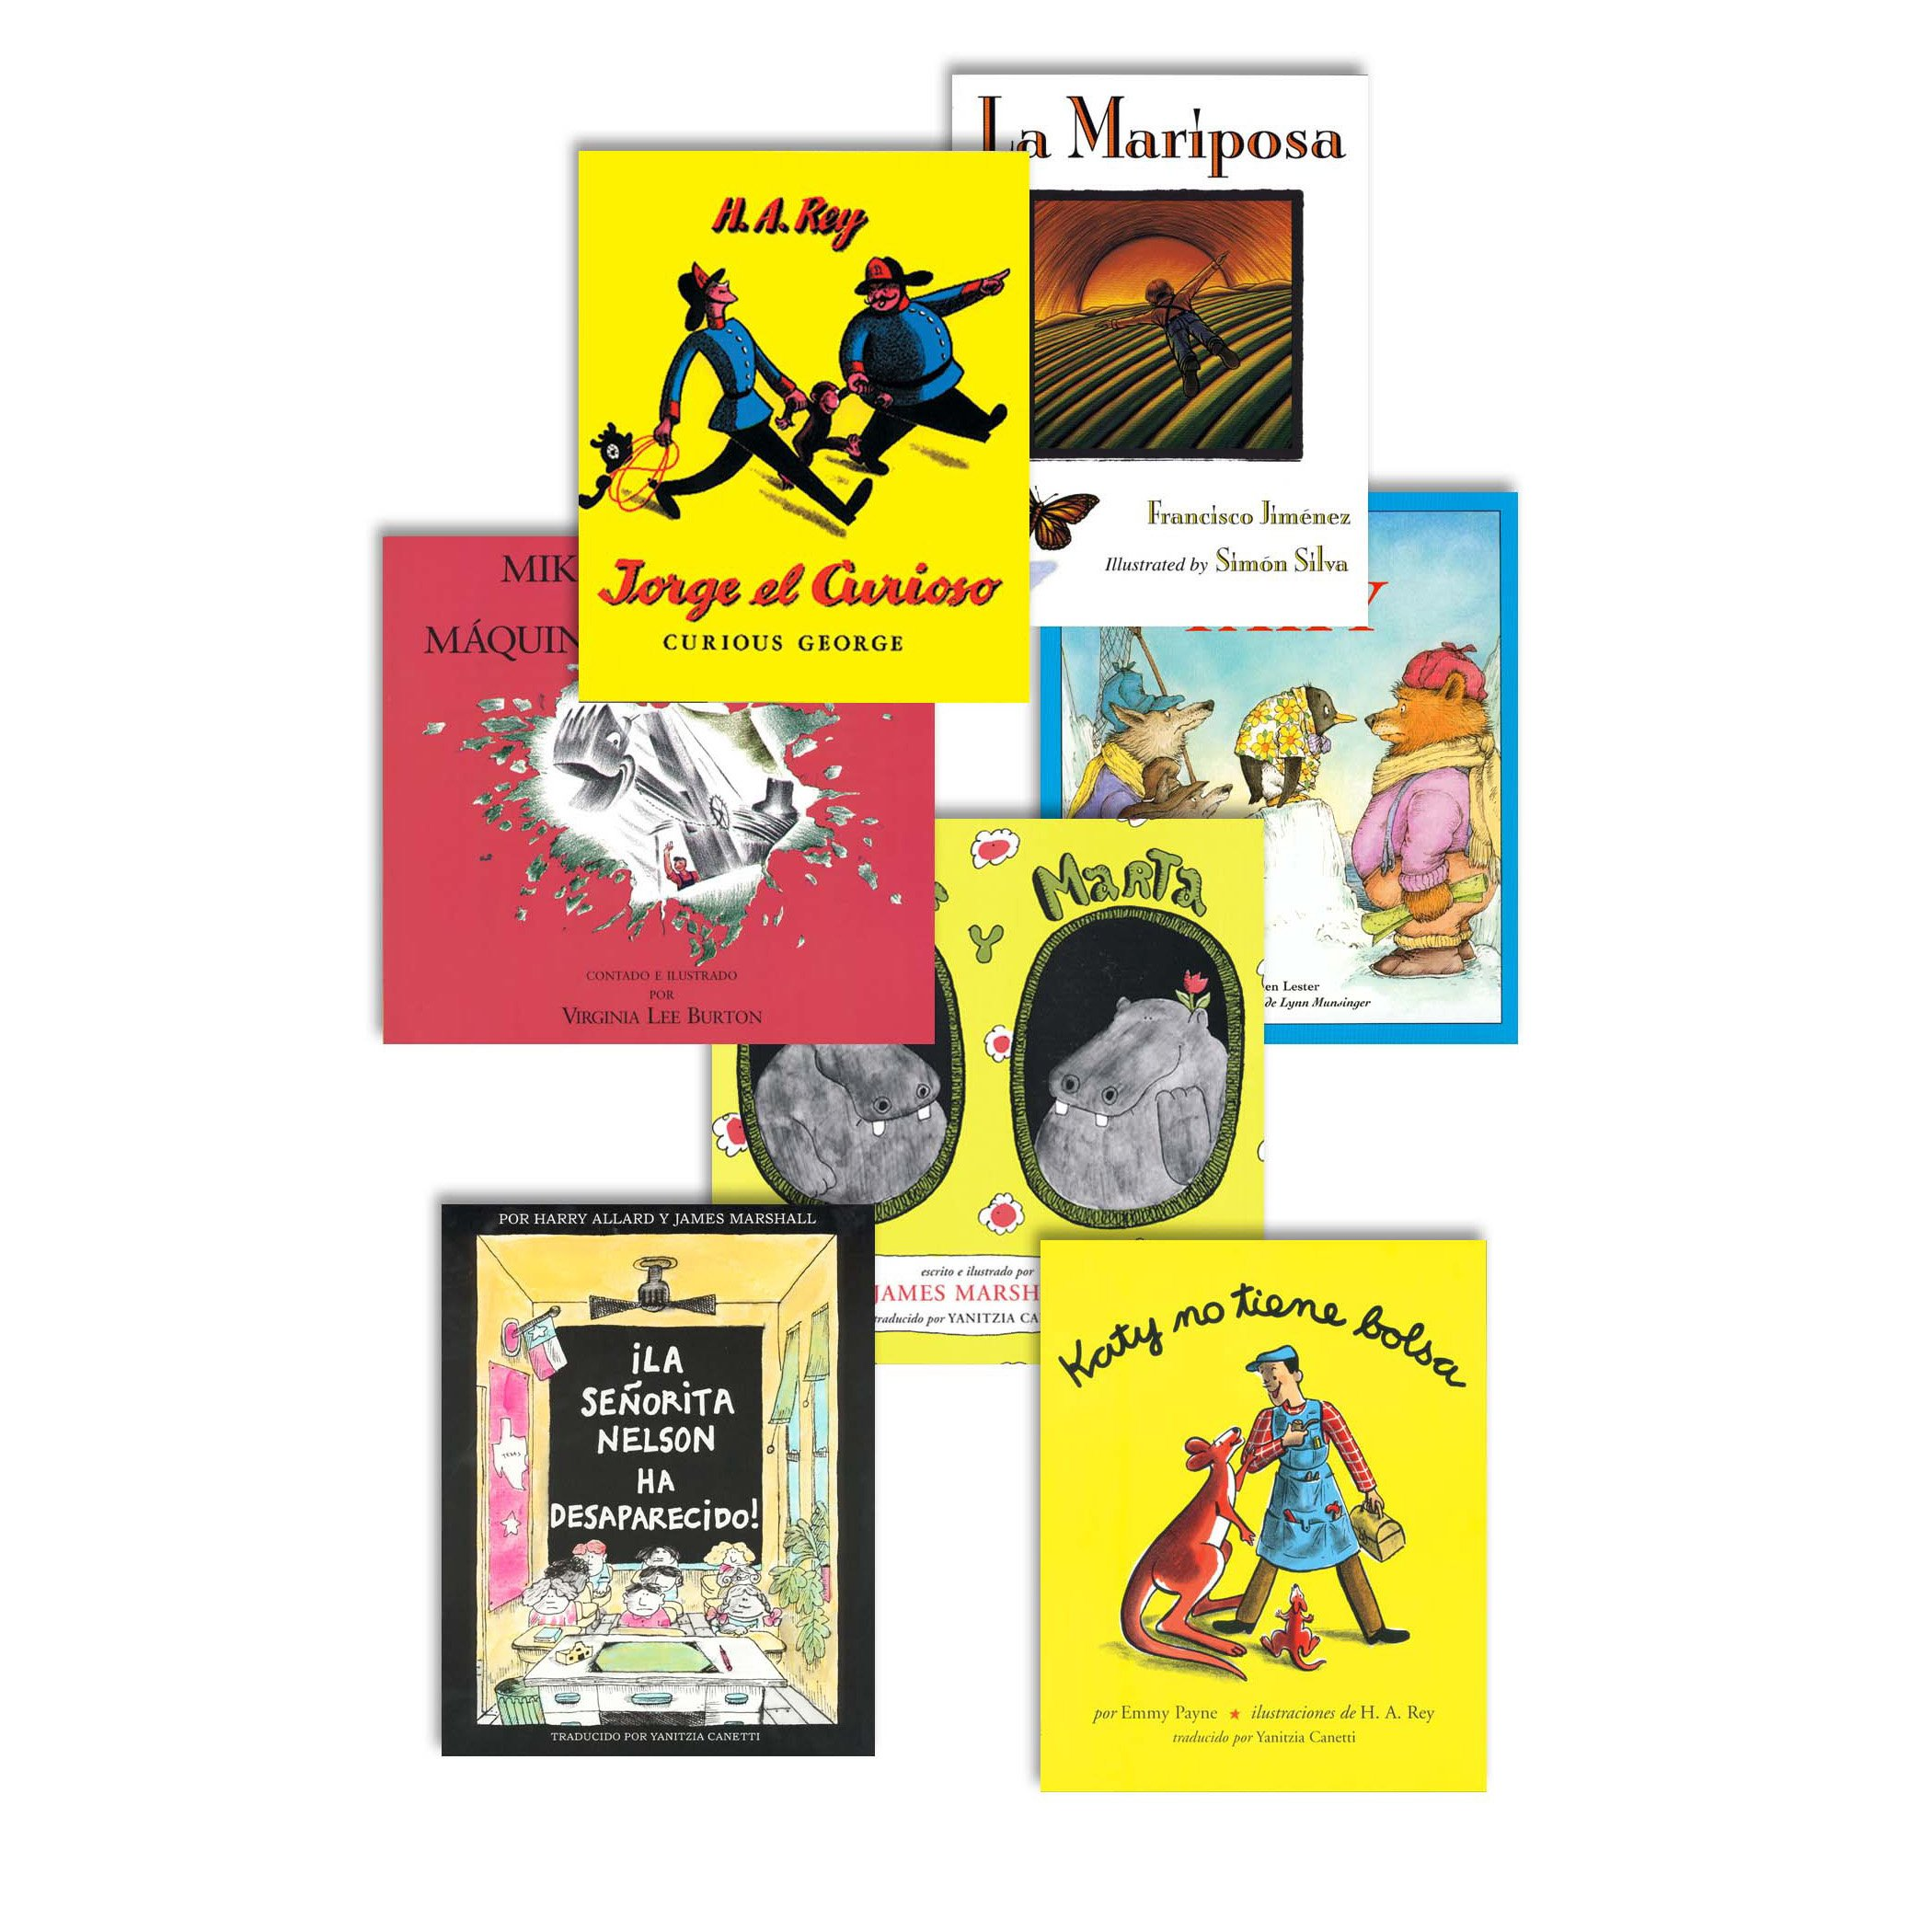 Houghton Mifflin ISBN9780618681129 Spanish Storybook Set Grade 1.29'' Height, 8.74'' Wide, 10.97'' Length (Pack of 7) by Houghton Mifflin